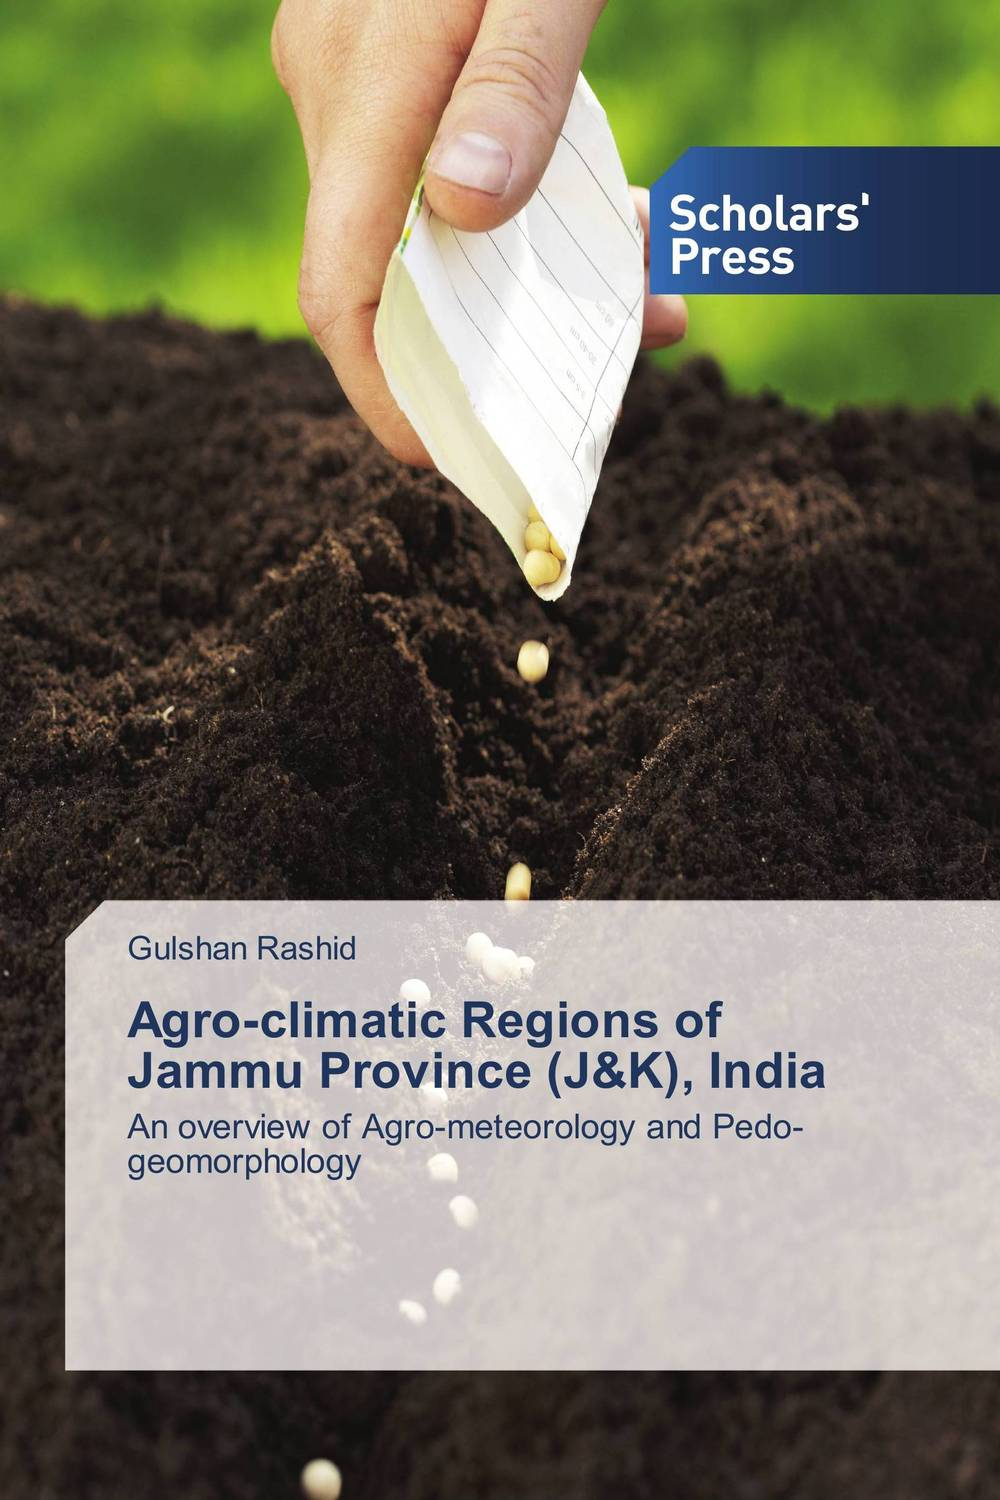 Agro-climatic Regions of Jammu Province (J&K), India biodiesel from algae